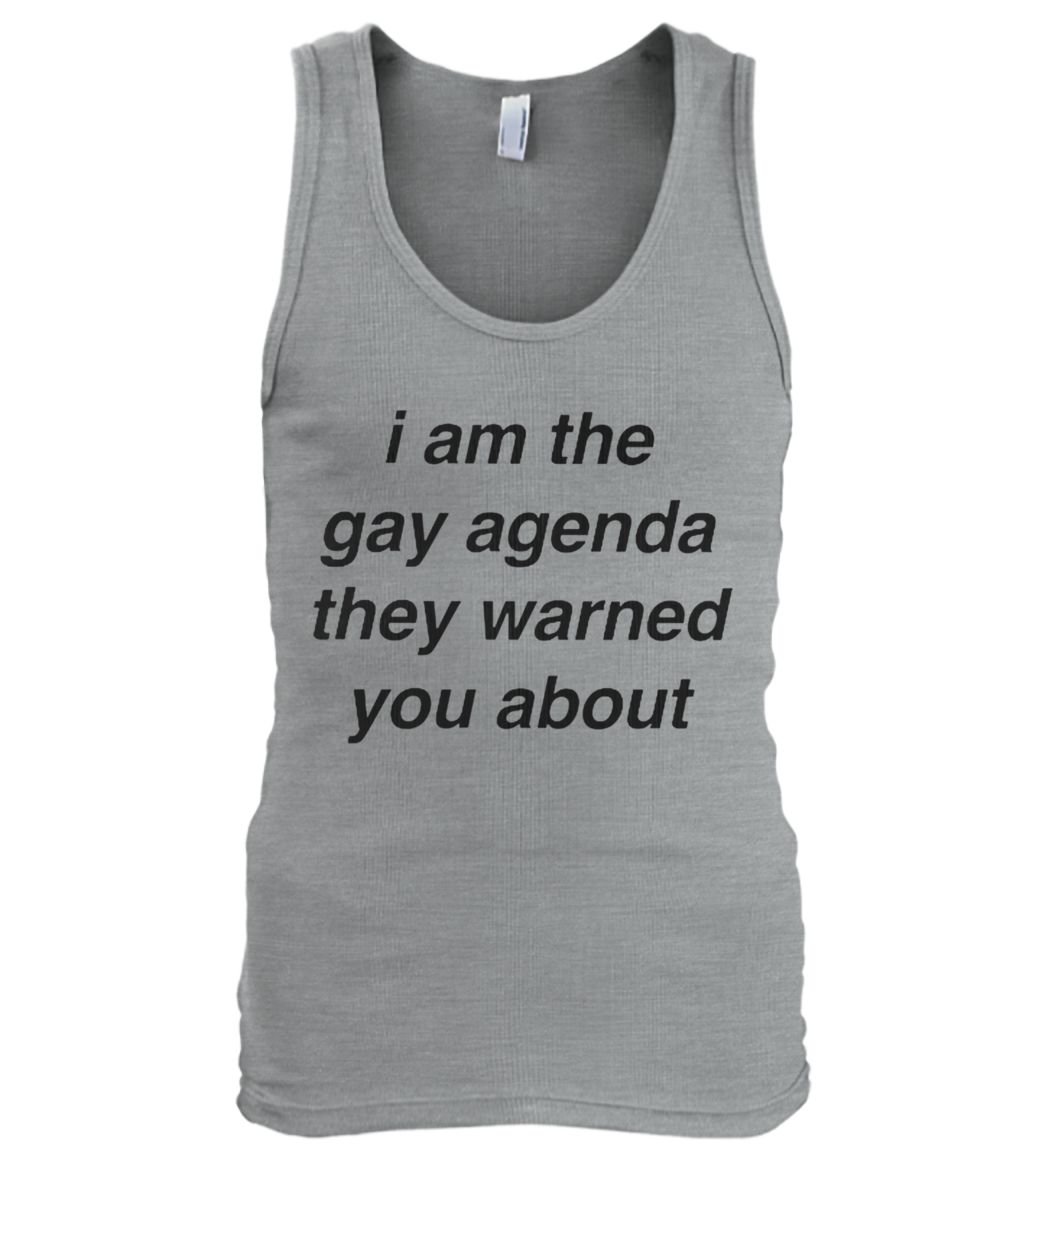 I am the gay agenda they warned you about men's tank top